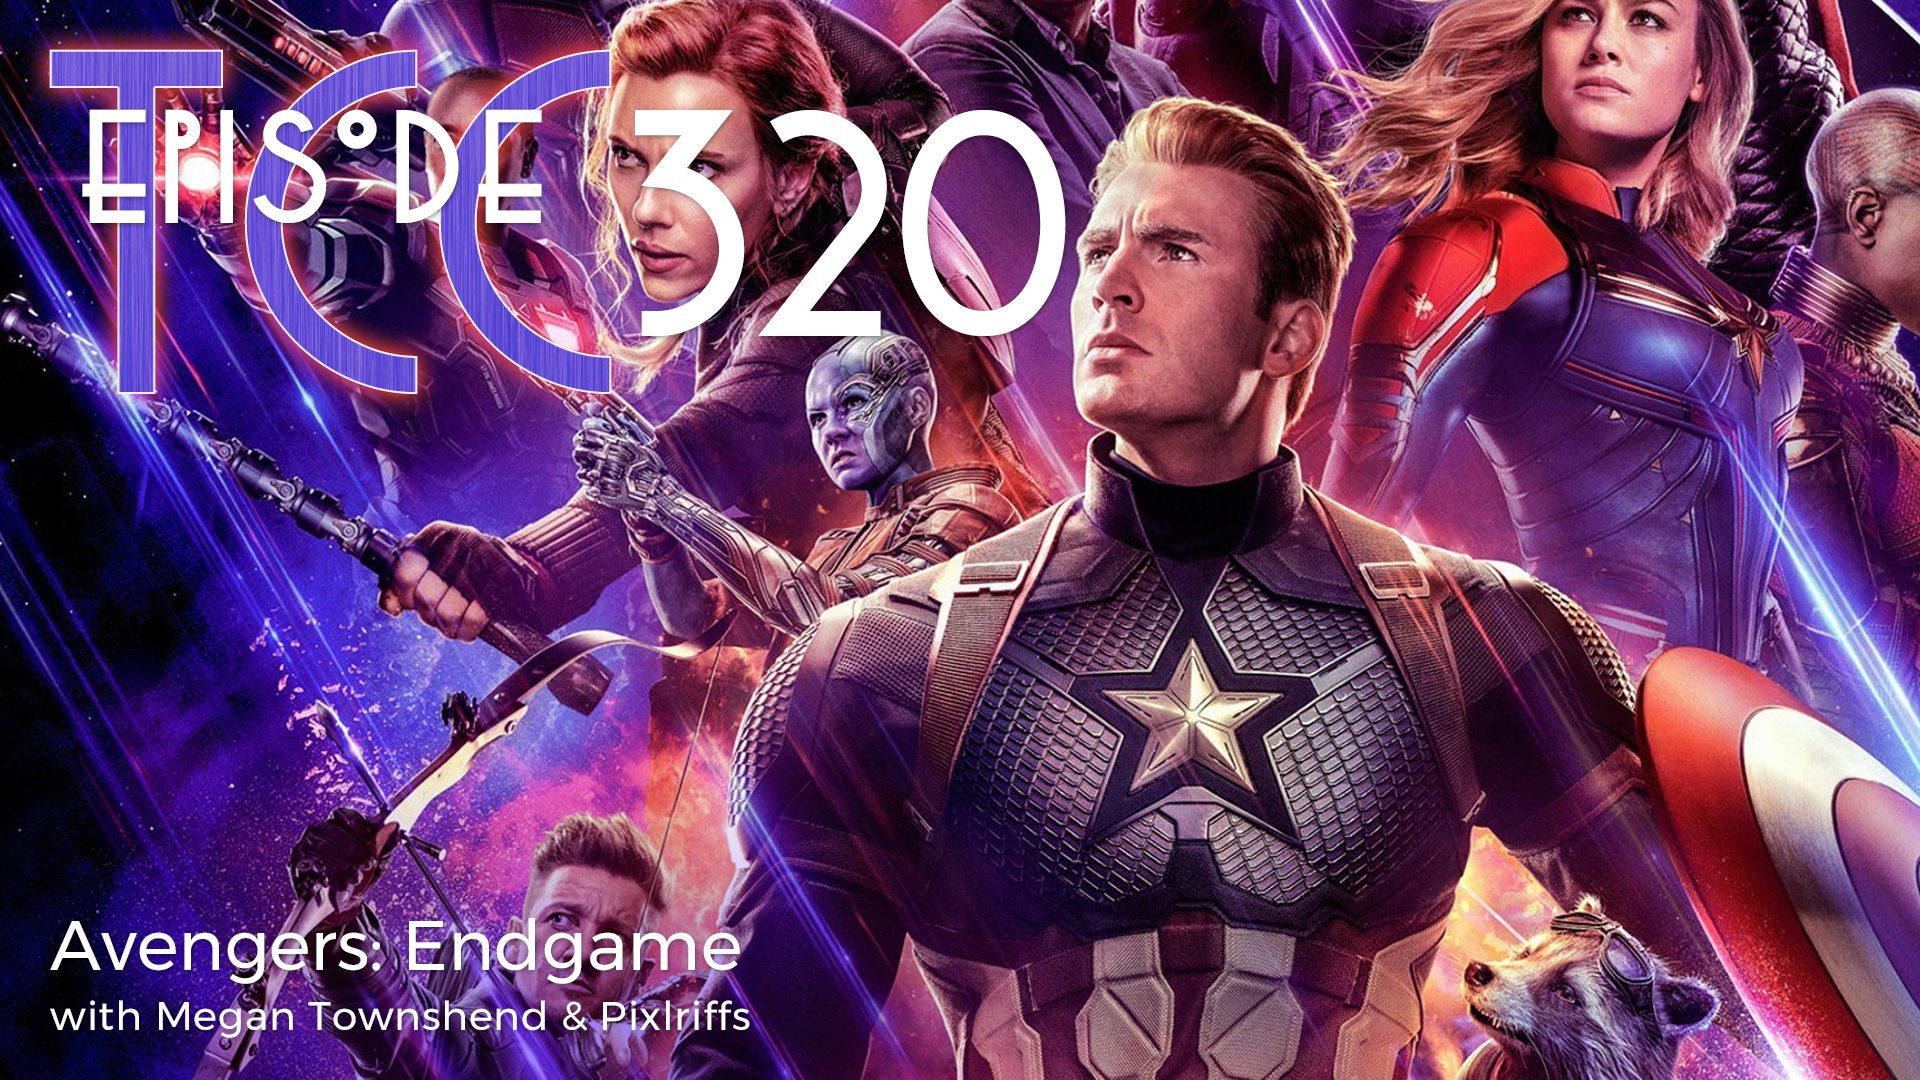 The Citadel Cafe 320: Avengers Endgame